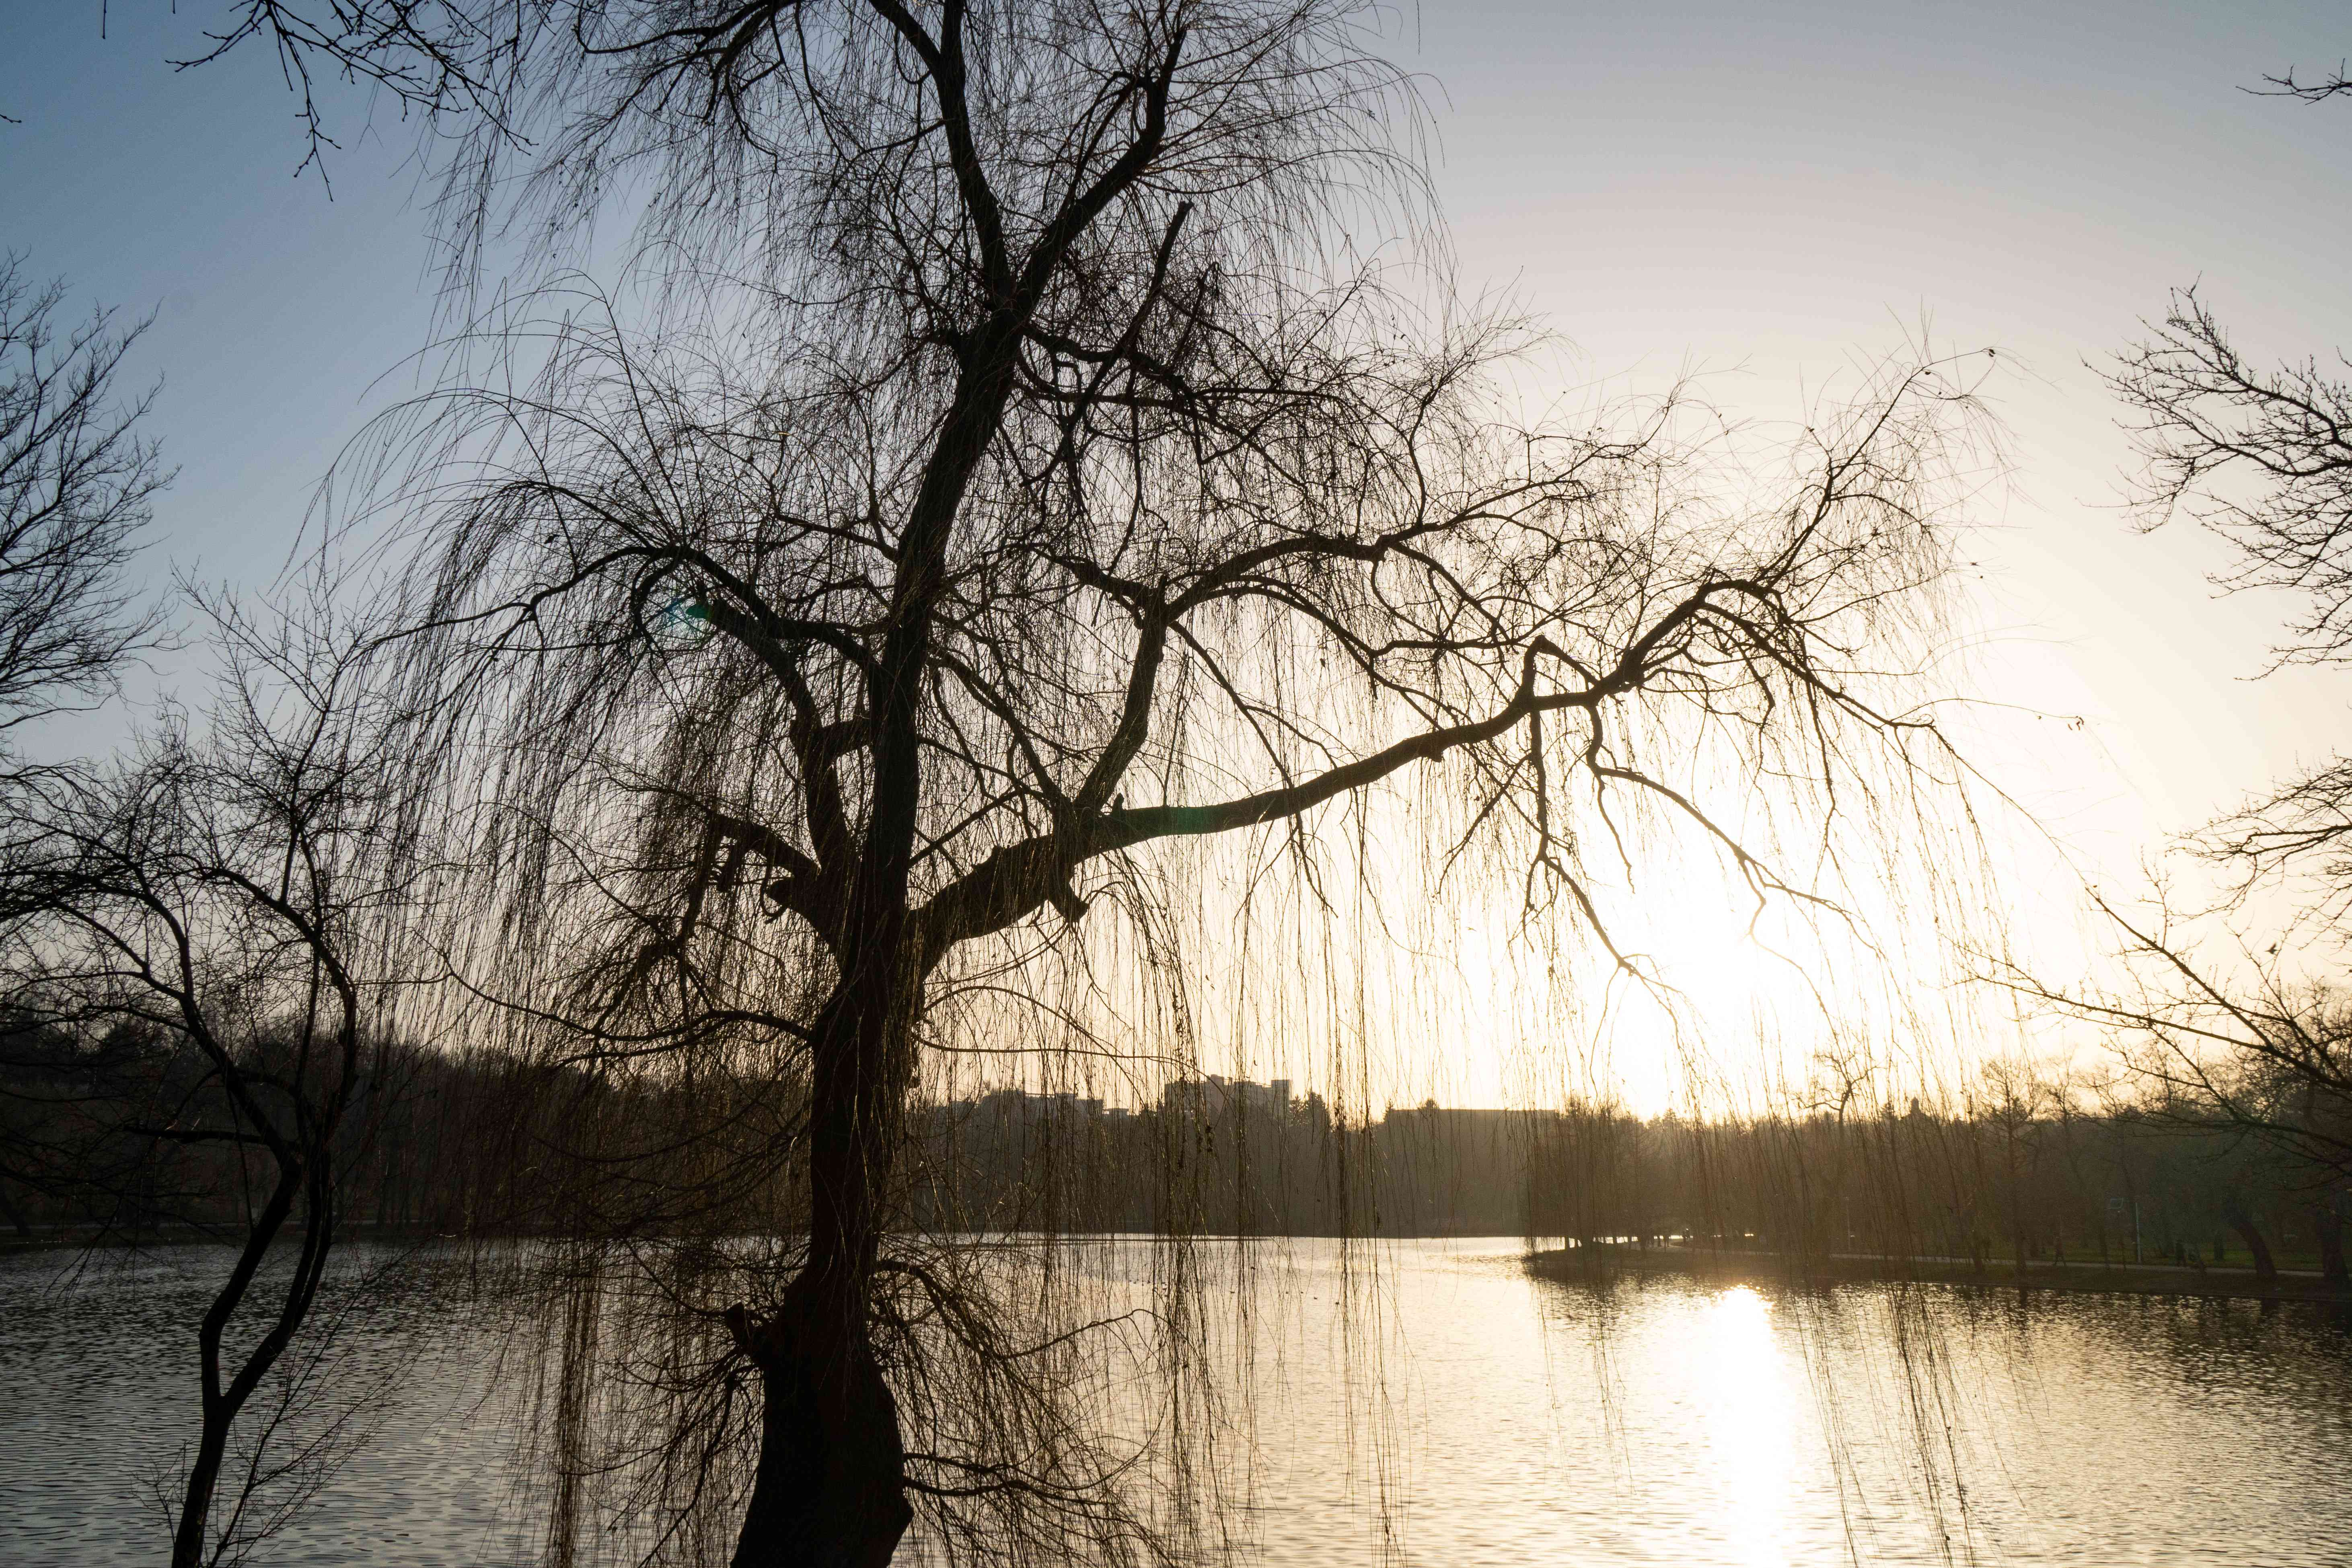 large barren tree at sunset during winter overlooking body of water